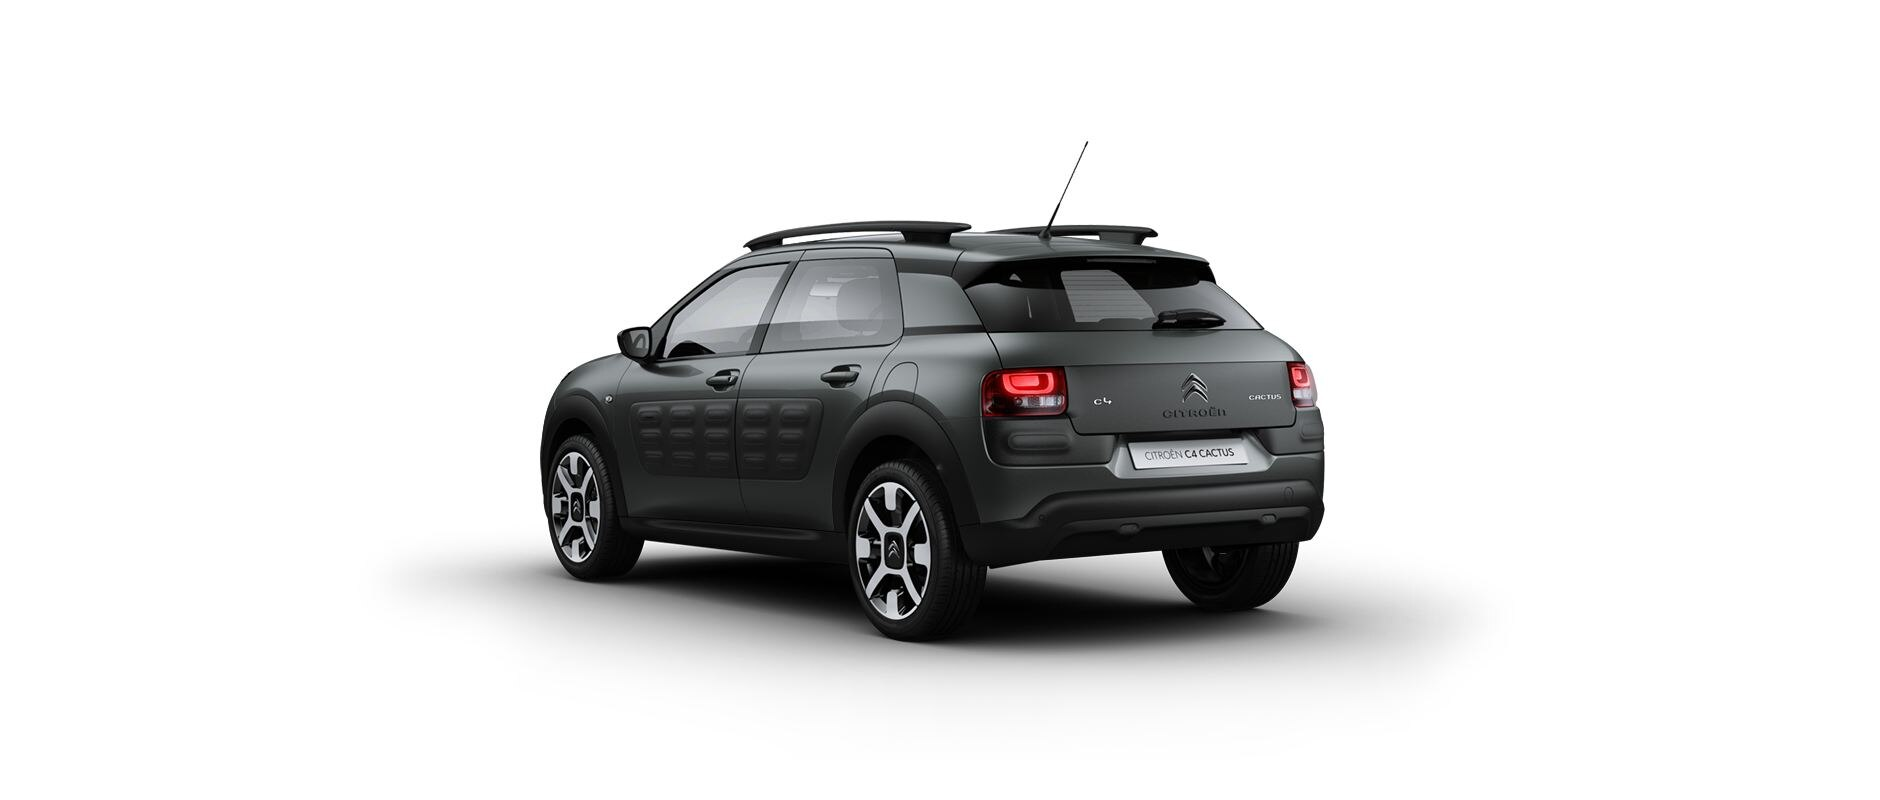 nouvelle citro n c4 cactus d couvrez la motorisation 110 cv. Black Bedroom Furniture Sets. Home Design Ideas